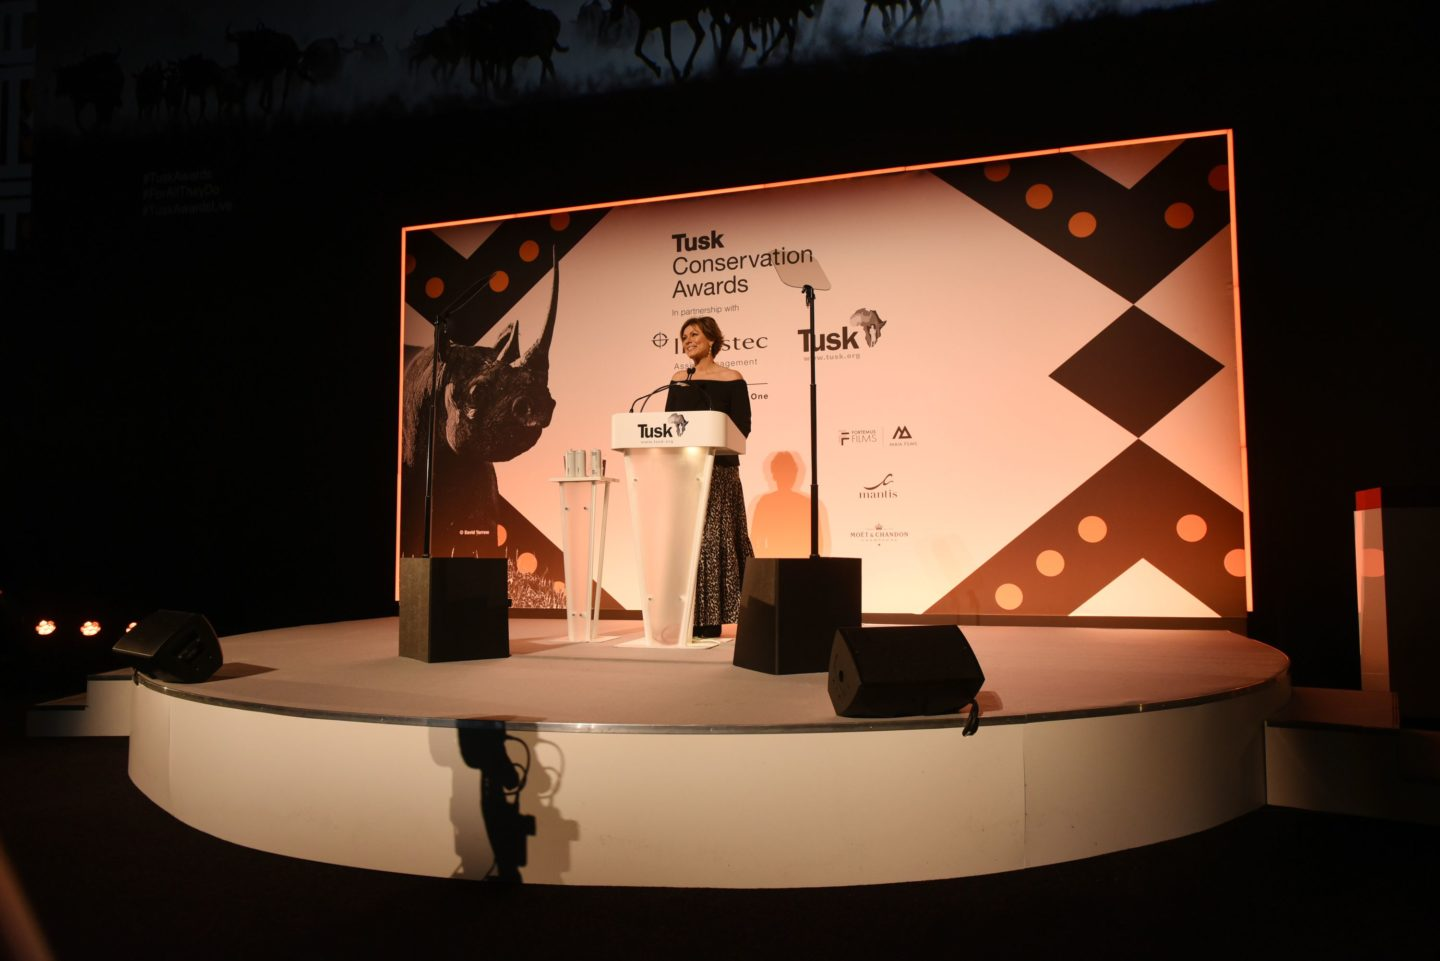 Tusk Ambassador Kate Silverton hosting the Awards